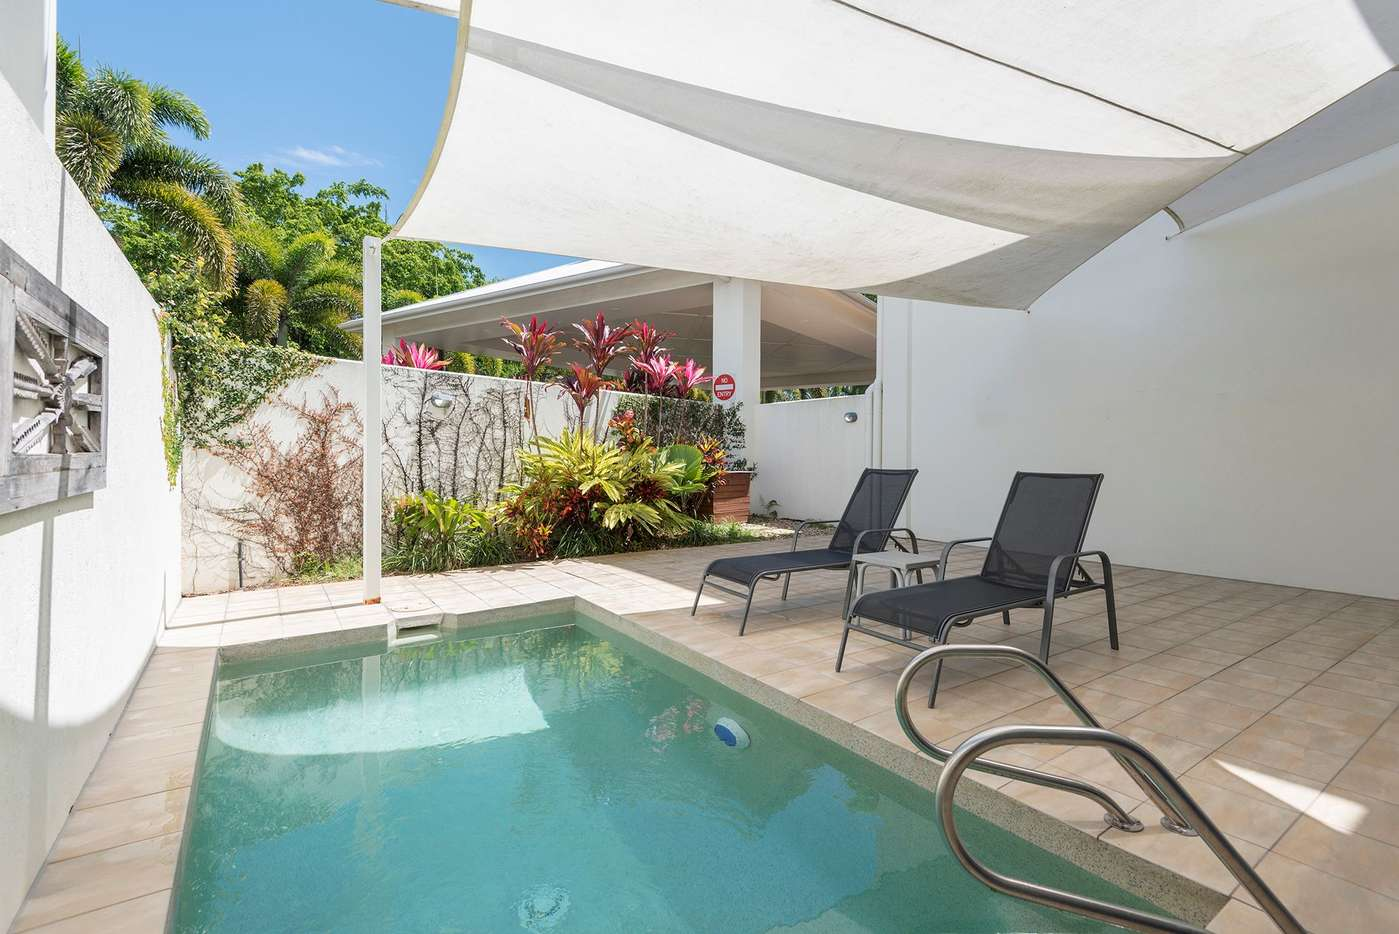 Main view of Homely apartment listing, 4/2-16 Langley Road, Port Douglas, QLD 4877